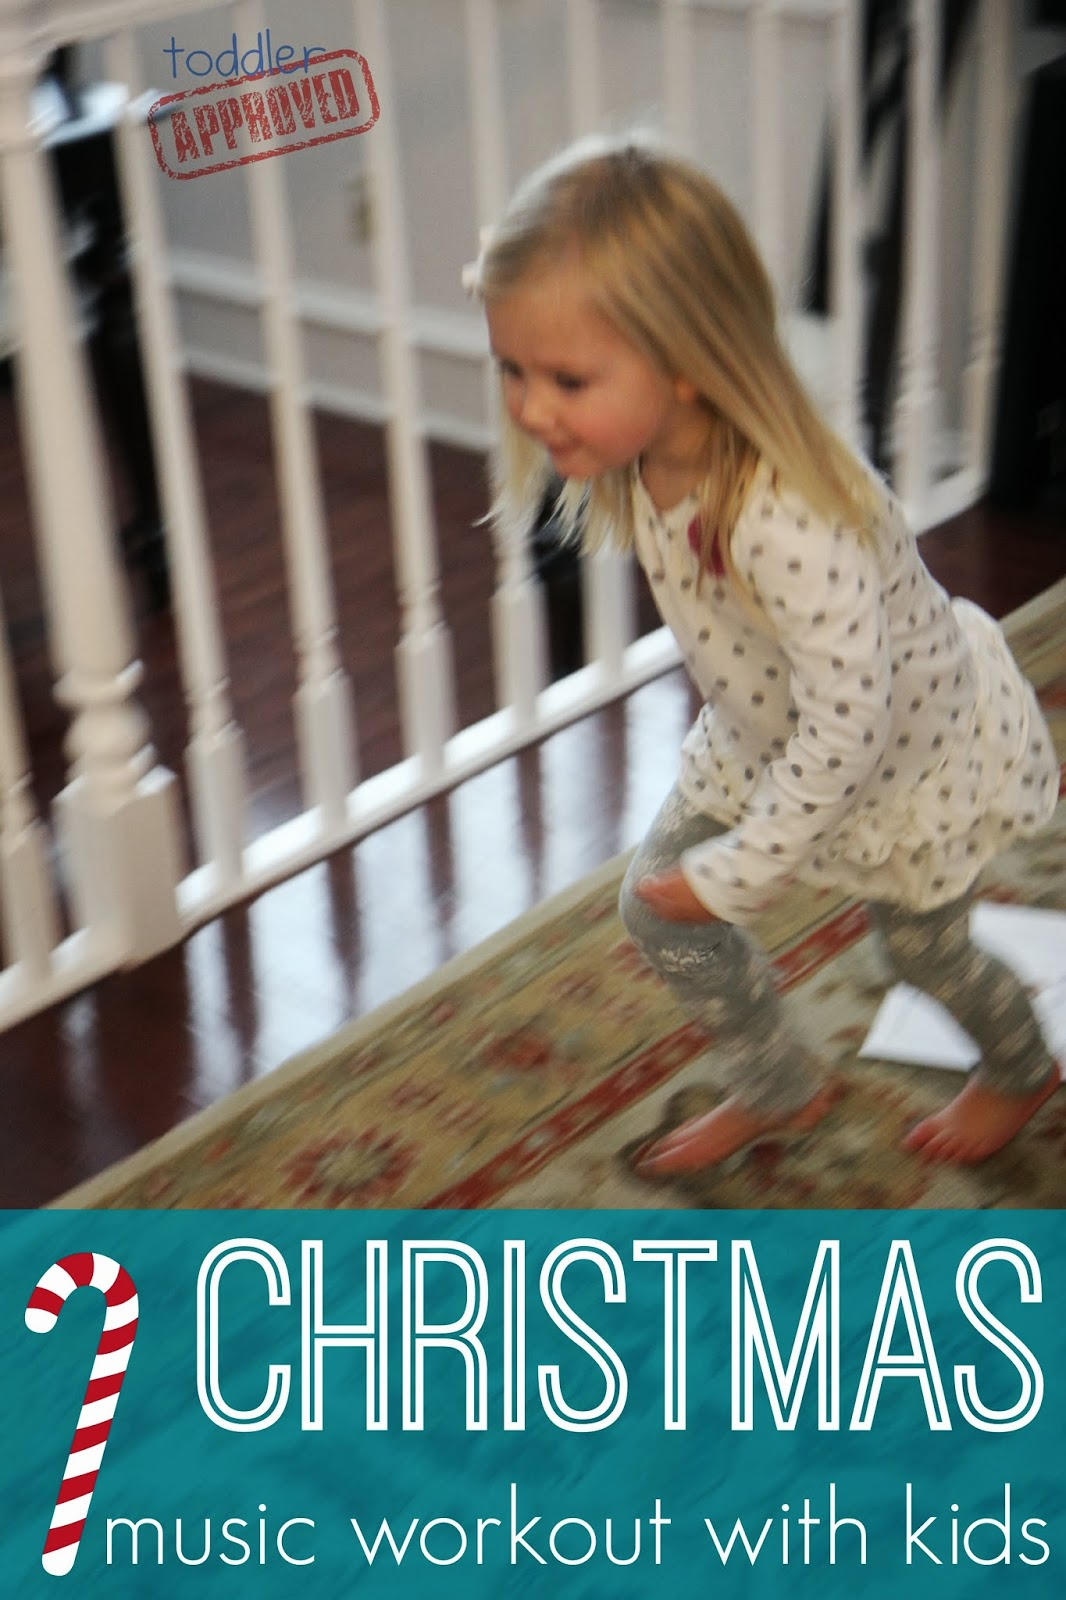 Toddler Approved!: Christmas Music Workout with Kids